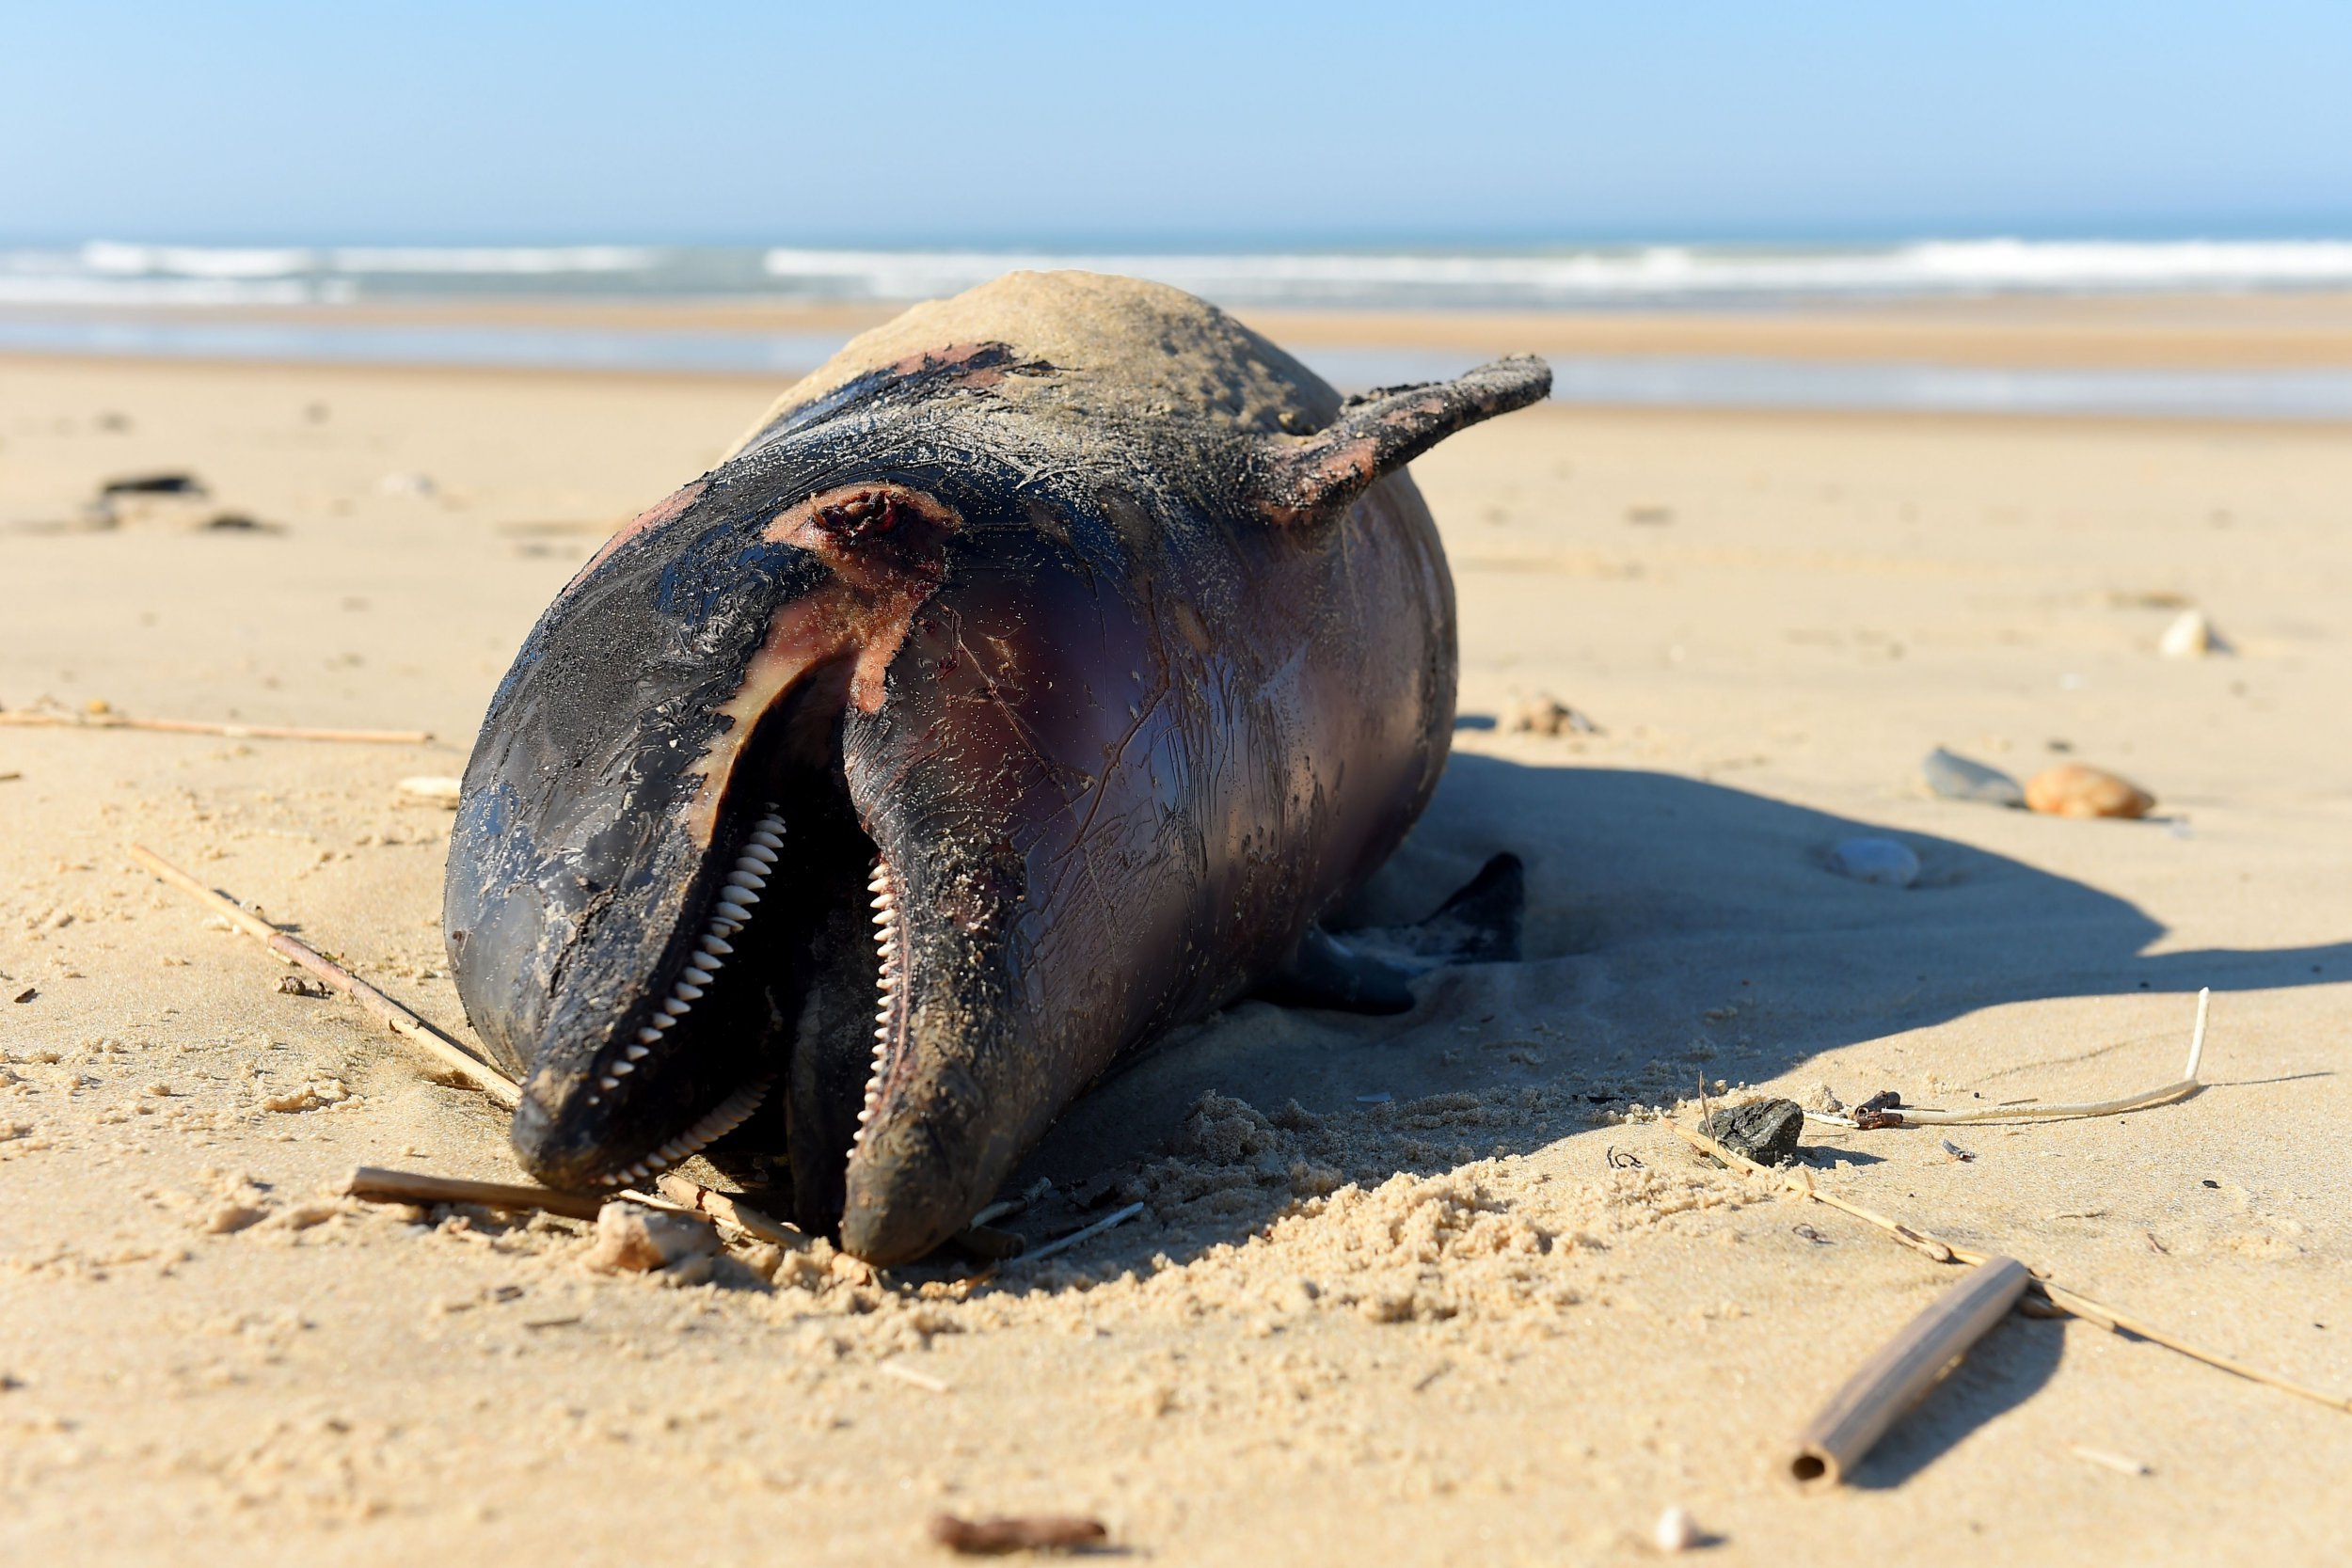 "A dead dolphin lies on a beach of the Atlantic Ocean near Lacanau, southwestern France, on March 22, 2019. - Over 1,100 beached dolphins have been recorded on the French Atlantic coast, mainly in the Vendee, Charente-Maritime and Gironde deprtments, according to the Pelagis Observatory, a marine mammal and seabird research laboratory based in La Rochelle. ""We have dolphins arriving on the coast with marks, we can prove that it's accidental capture but we can not detect what fishing gear has contributed to this."" We need to know exactly what it's happening"", said Willy Dabin of the Pelagis Observatory. (Photo by NICOLAS TUCAT / AFP)NICOLAS TUCAT/AFP/Getty Images"